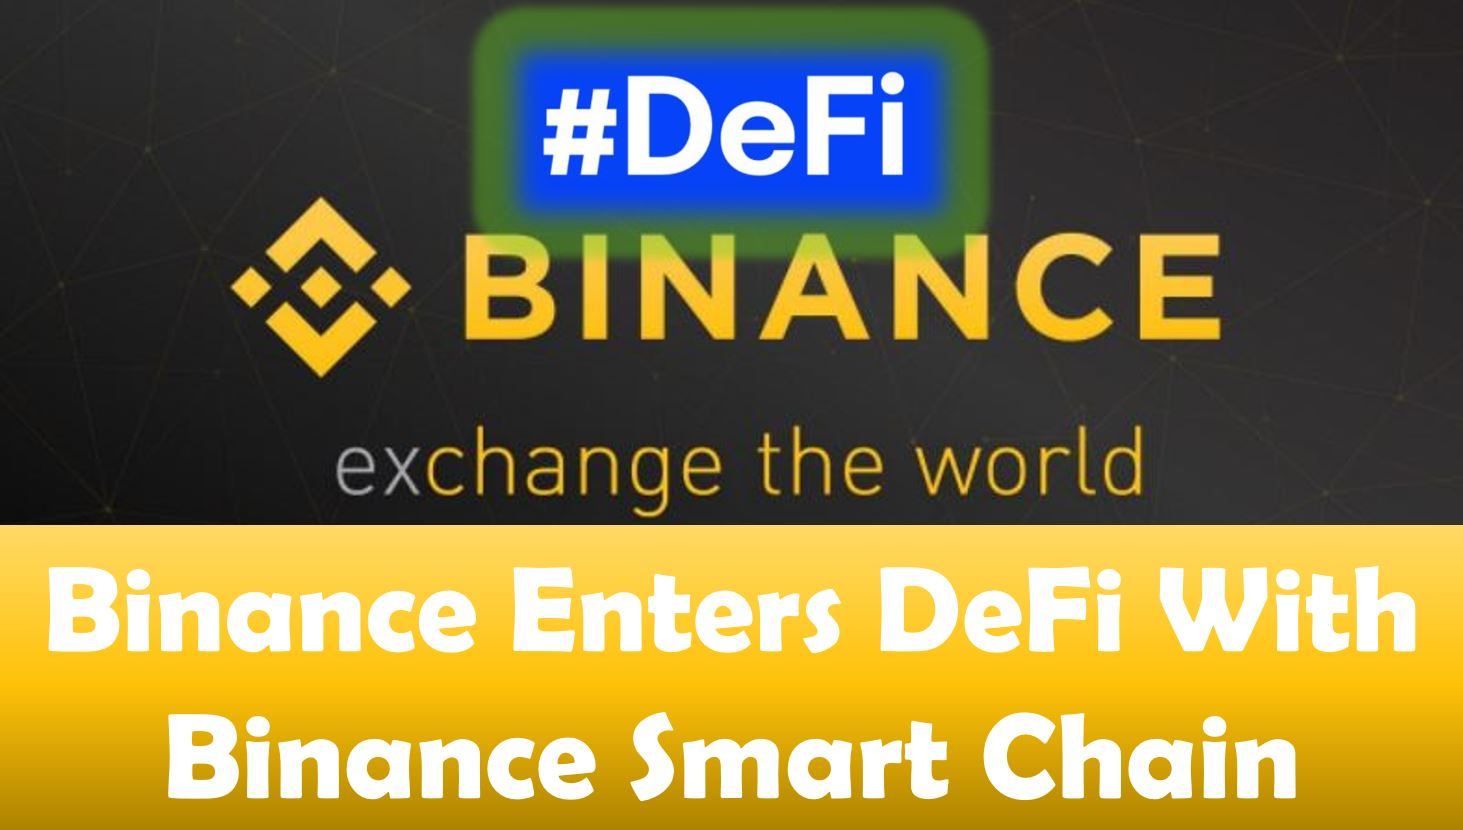 Binance Enters DeFi With Binance Smart Chain